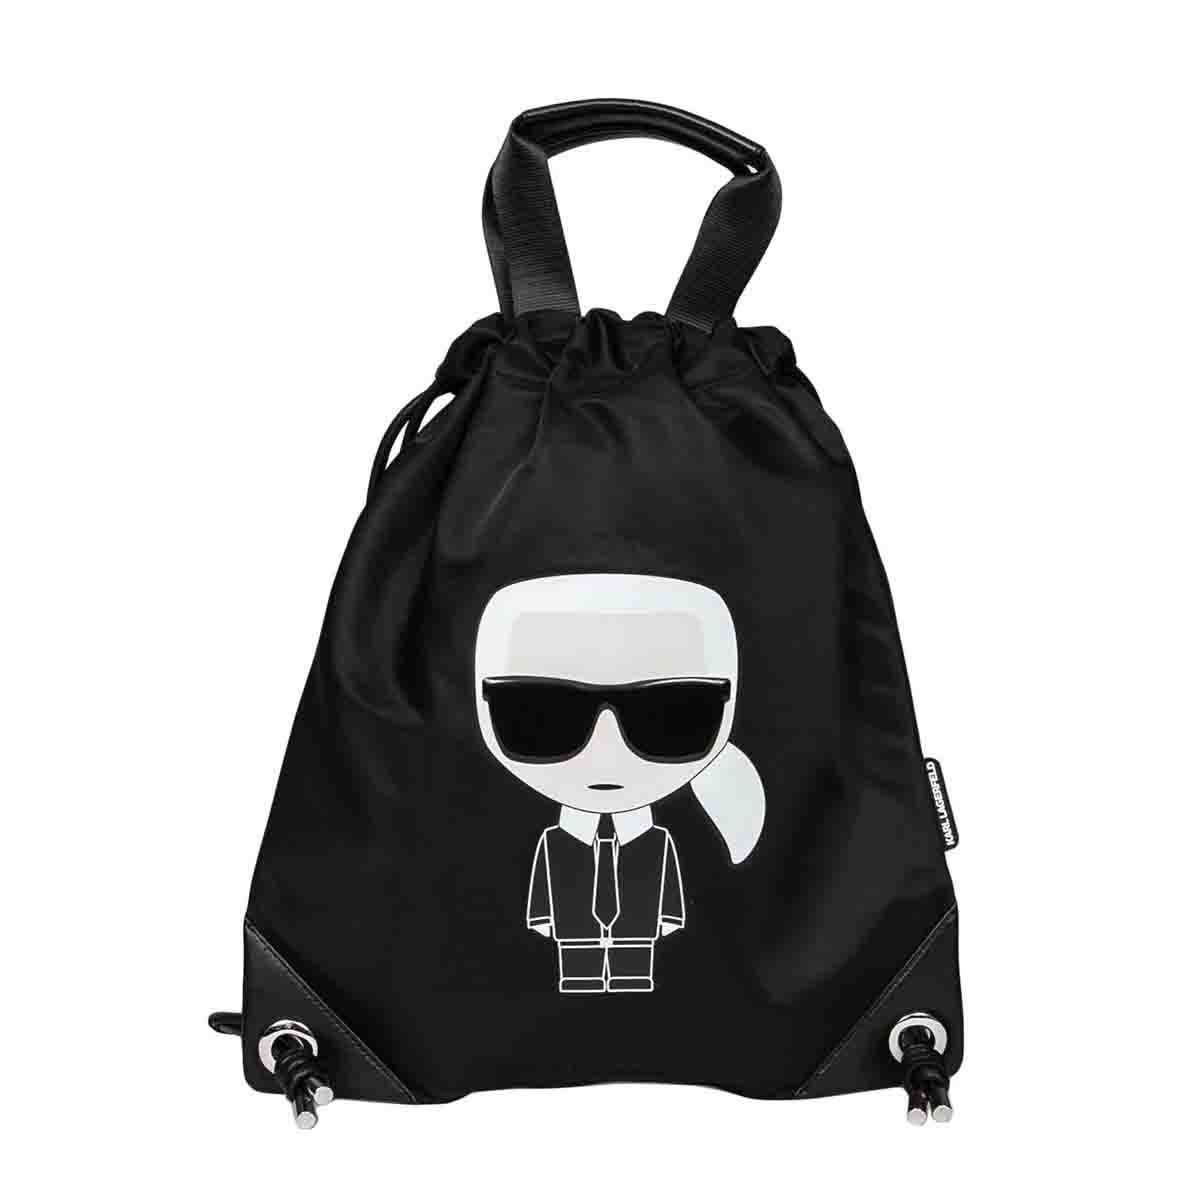 Karl Lagerfeld K/ikonik Flat Backpack